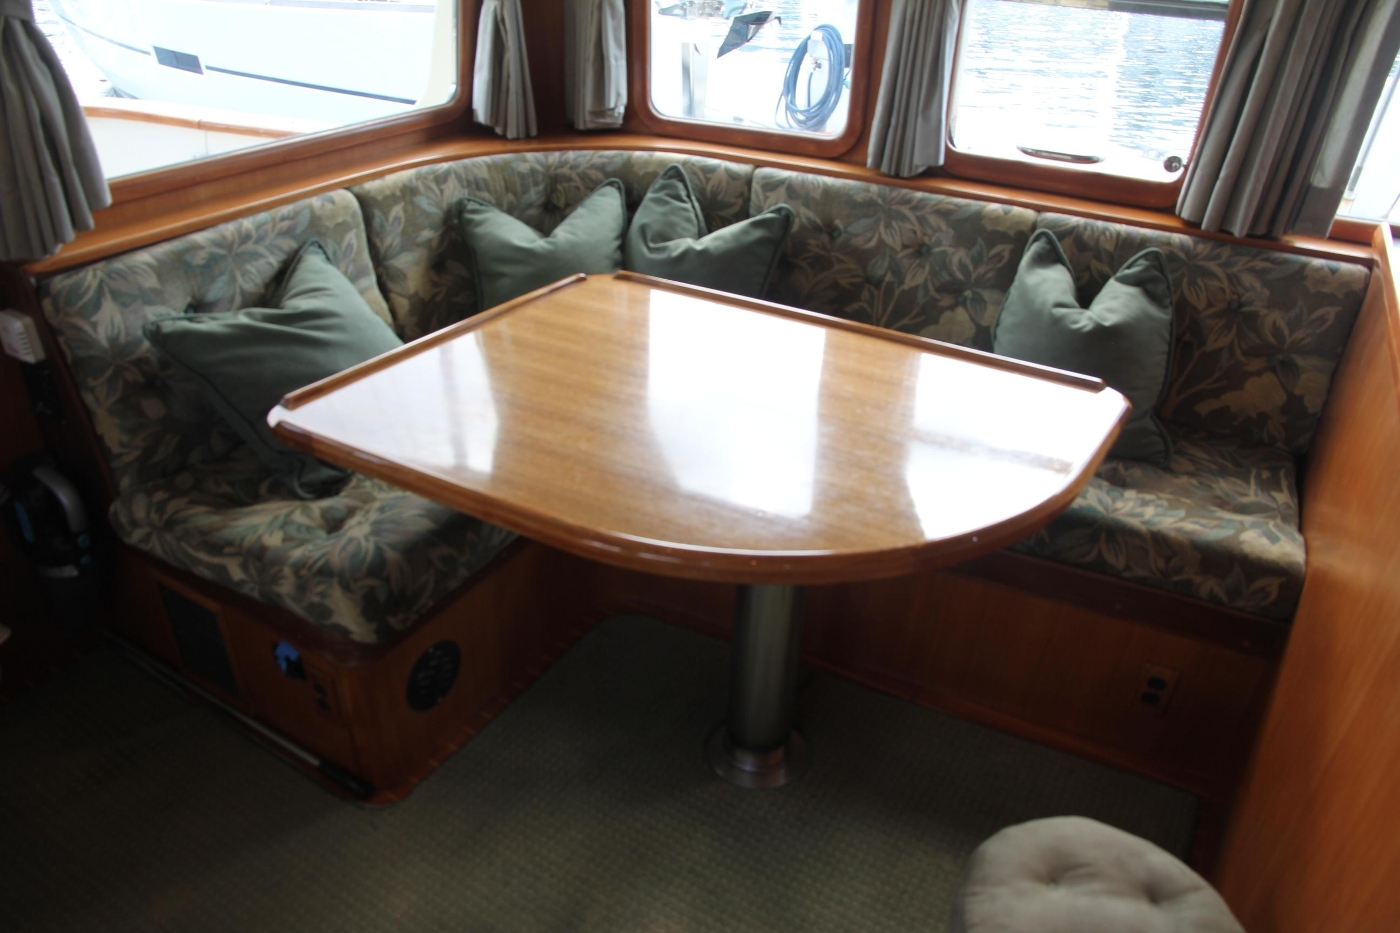 2000 Nordhavn Pilothouse, L-Shaped Settee and Table